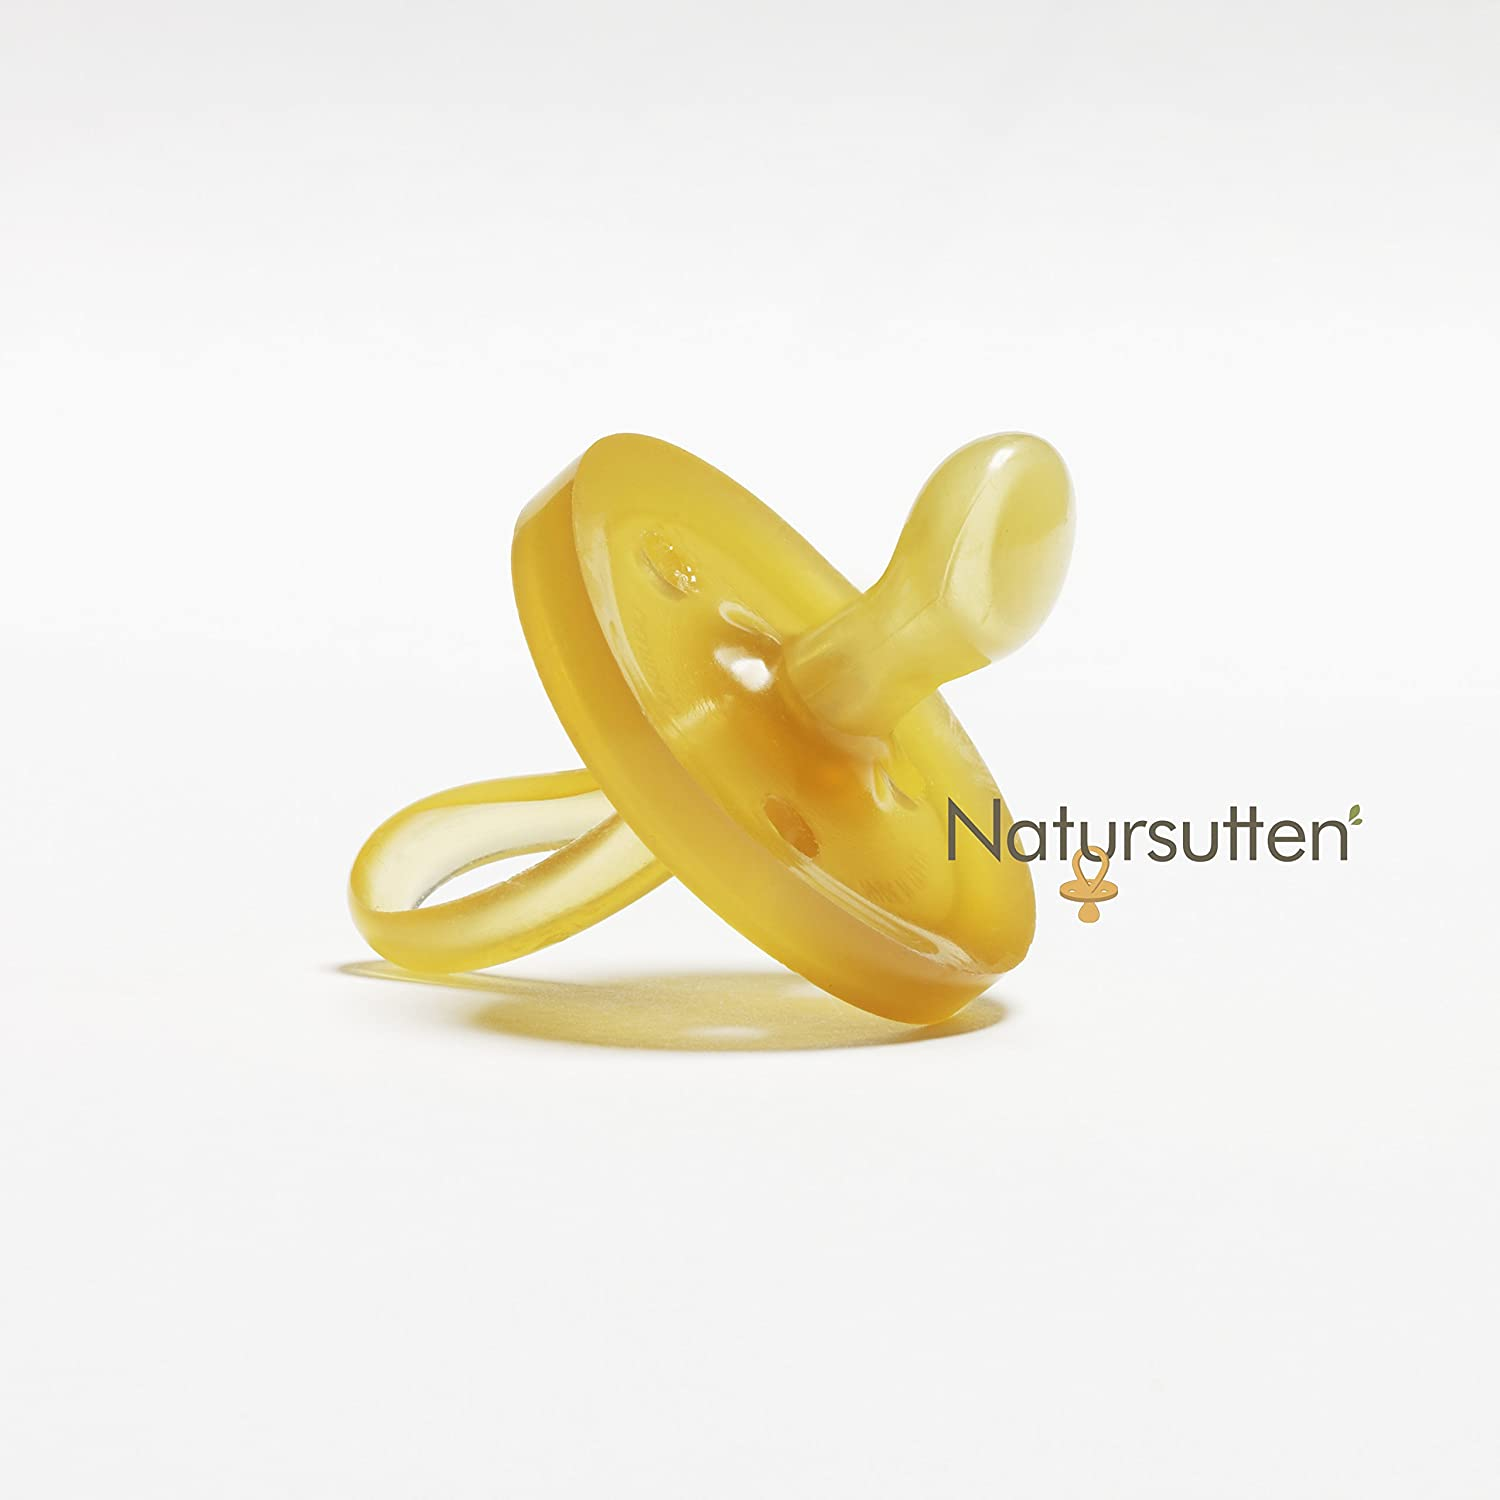 Natursutten BPA-Free Natural Rubber Pacifier, Orthodontic, 0-6 Months